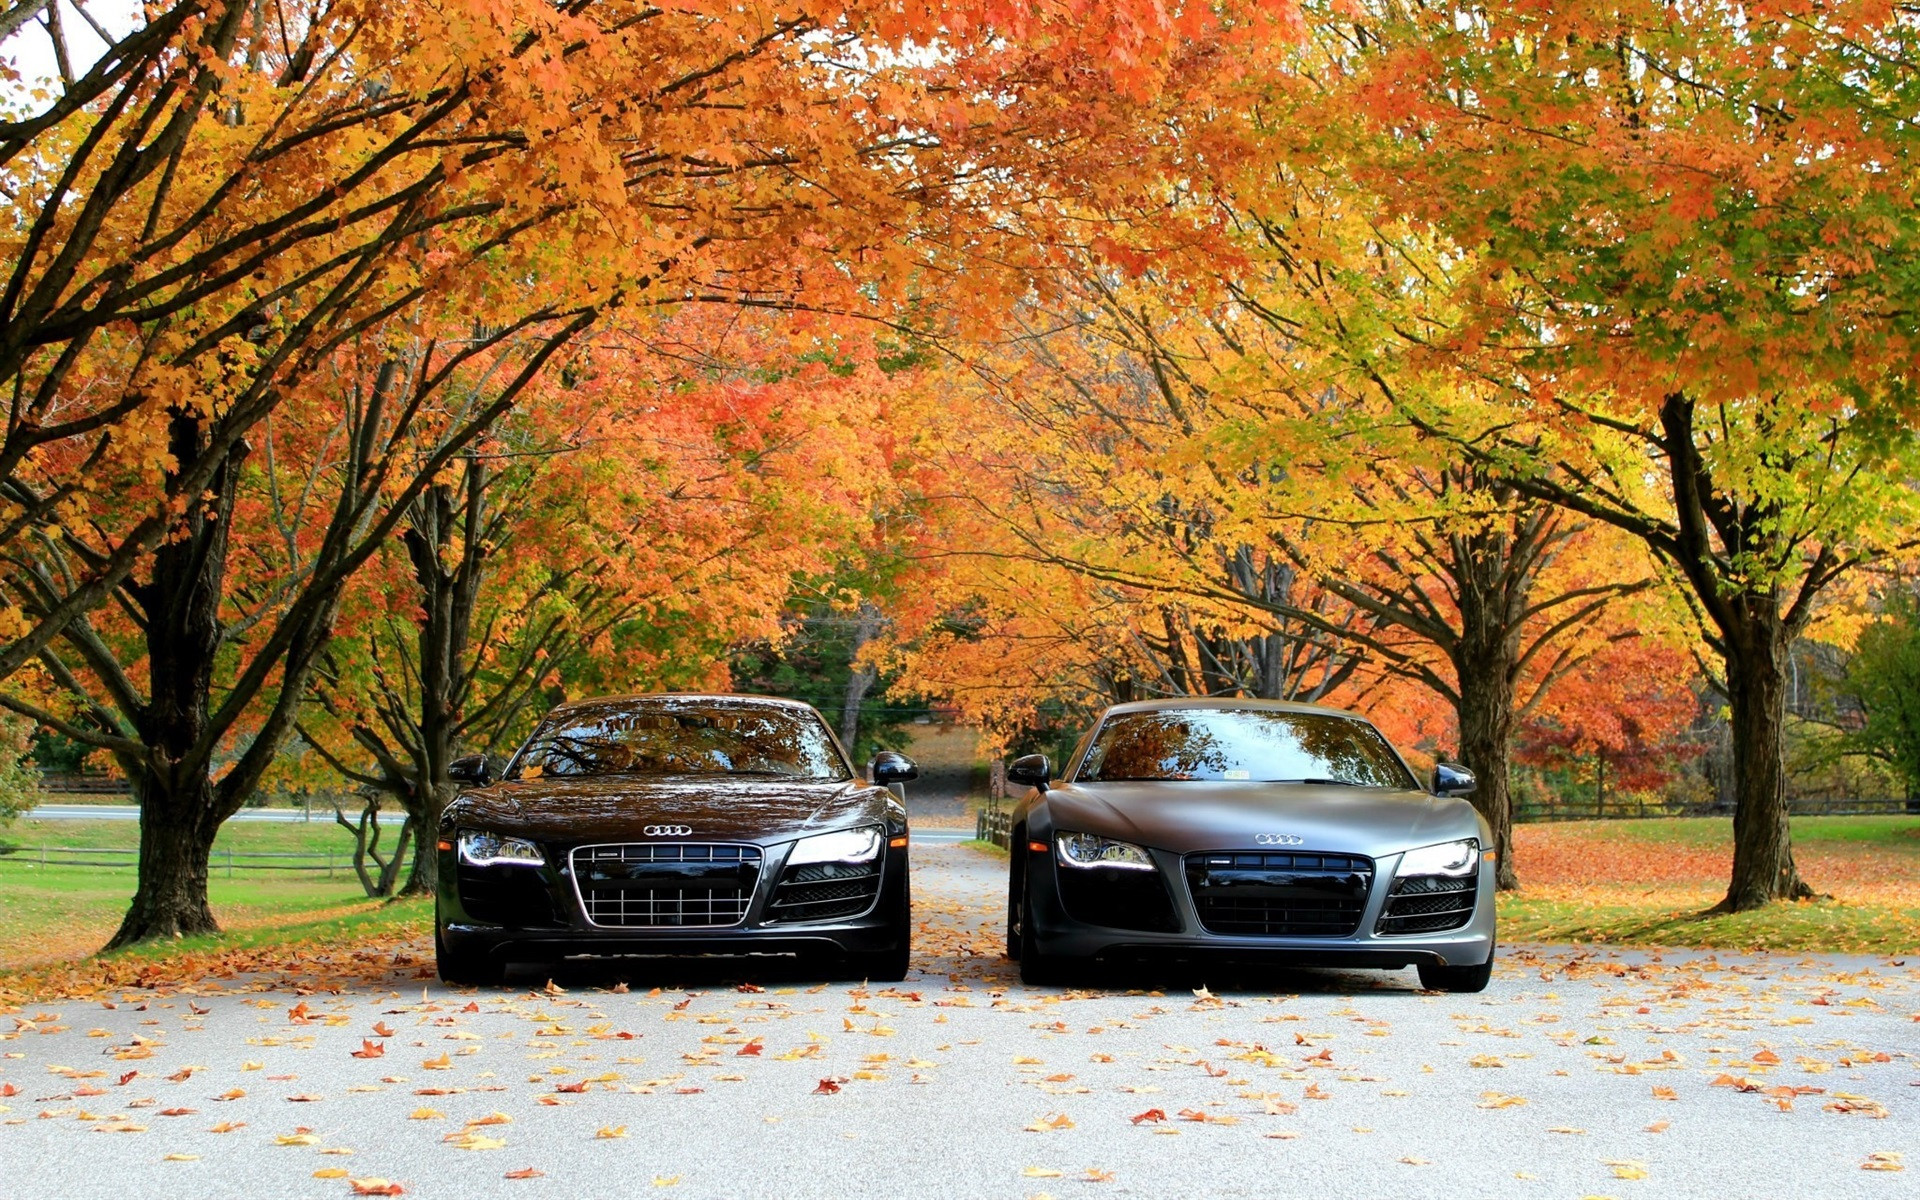 Wallpaper Audi R8 V10 Cars Front View Autumn Trees 1920x1200 Hd Picture Image